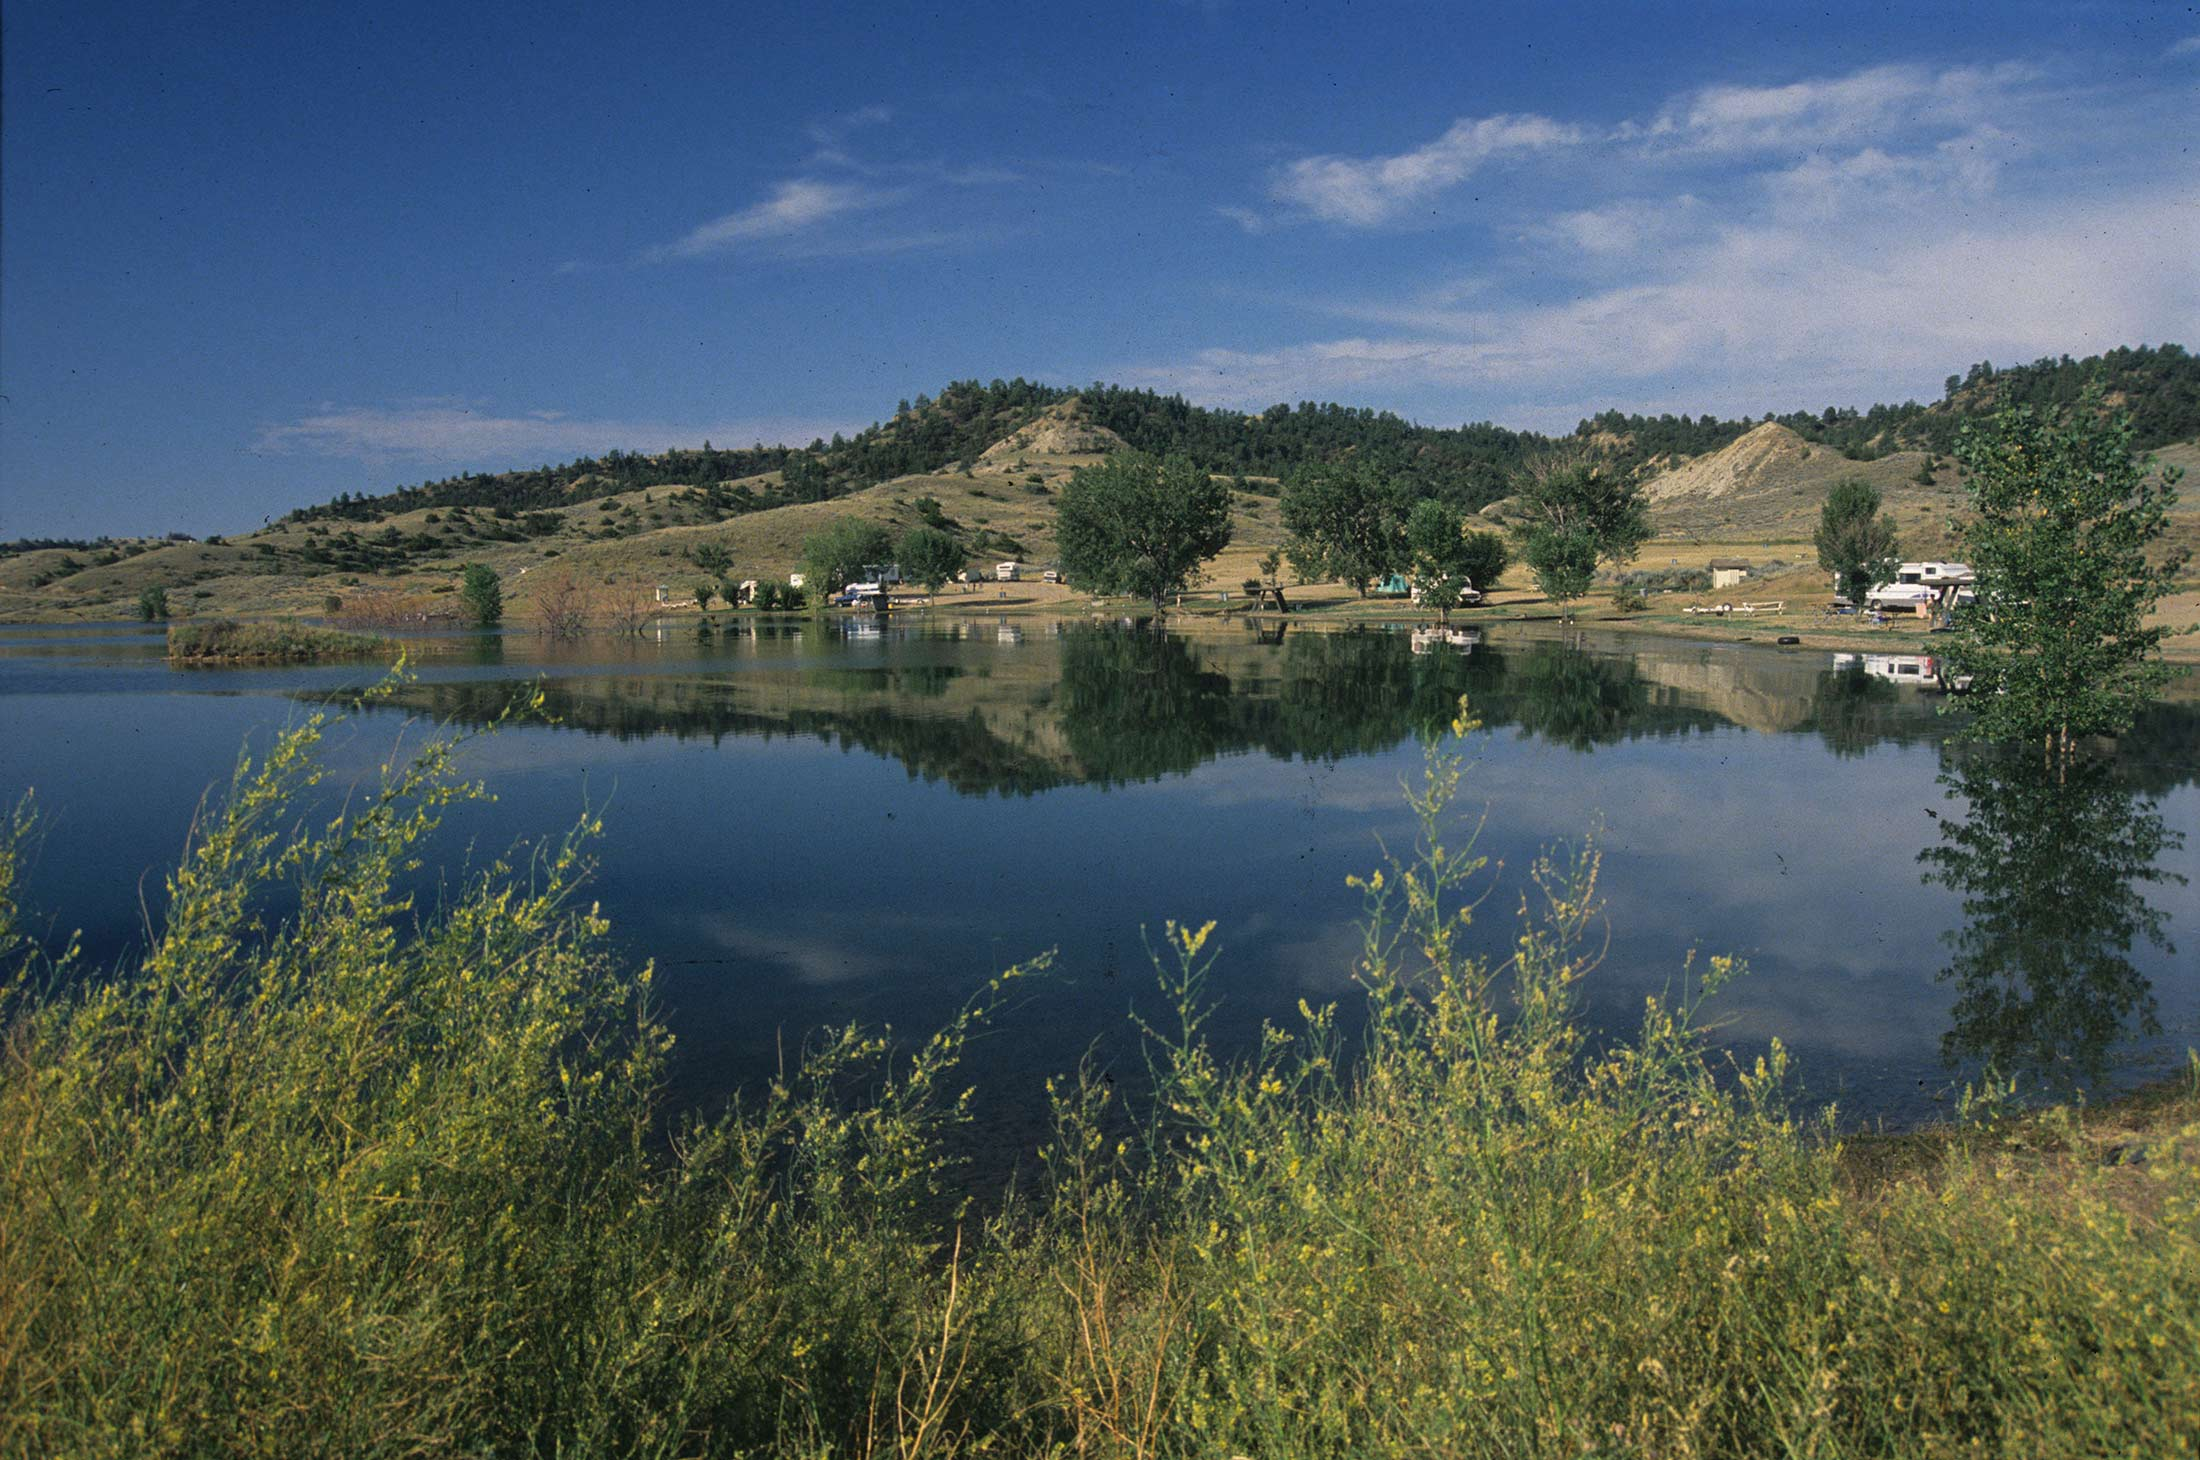 State Parks in Montana's Missouri River Country